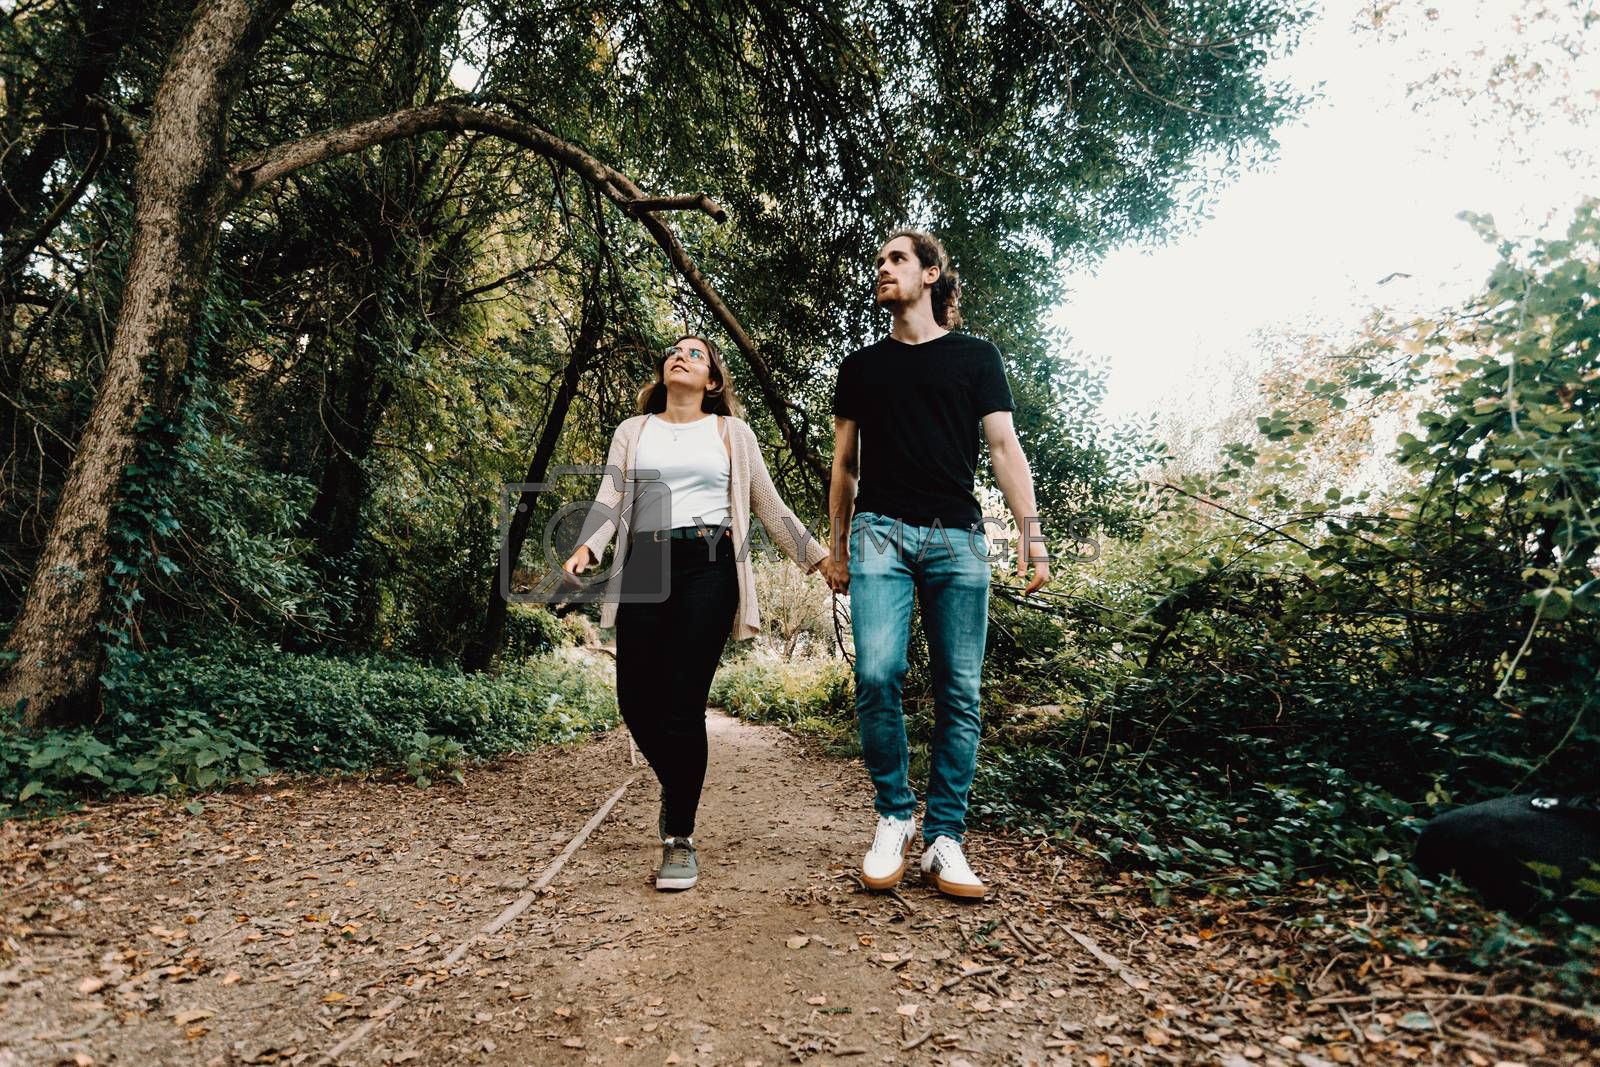 A front view of a young couple taking a walk and exploring the forest during autumn